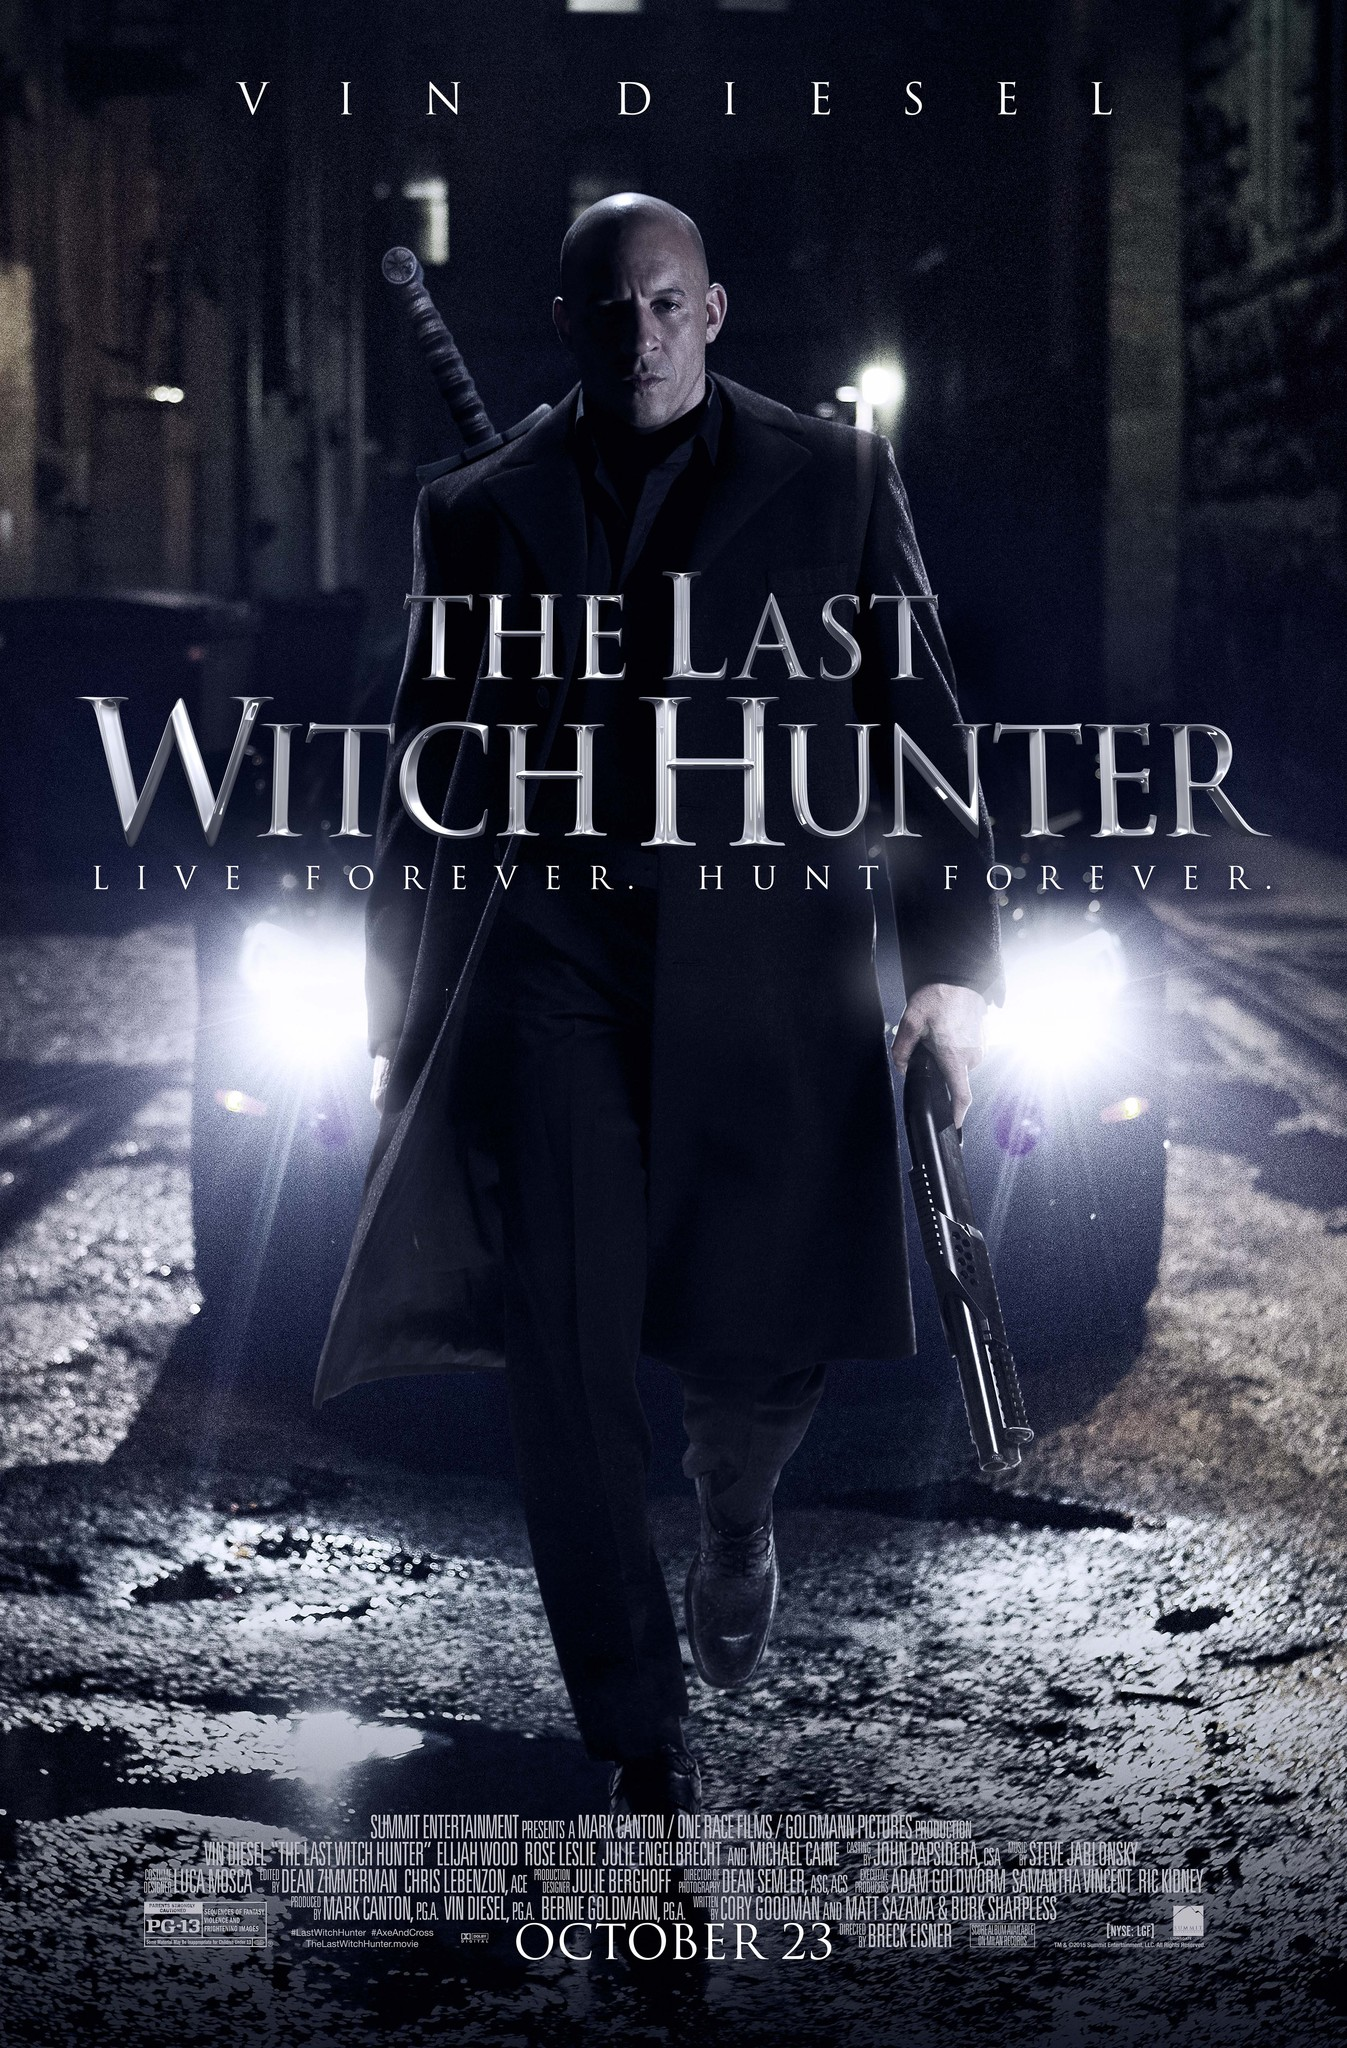 The Last Witch Hunter (2015) BluRay 480p, 720p & 1080p